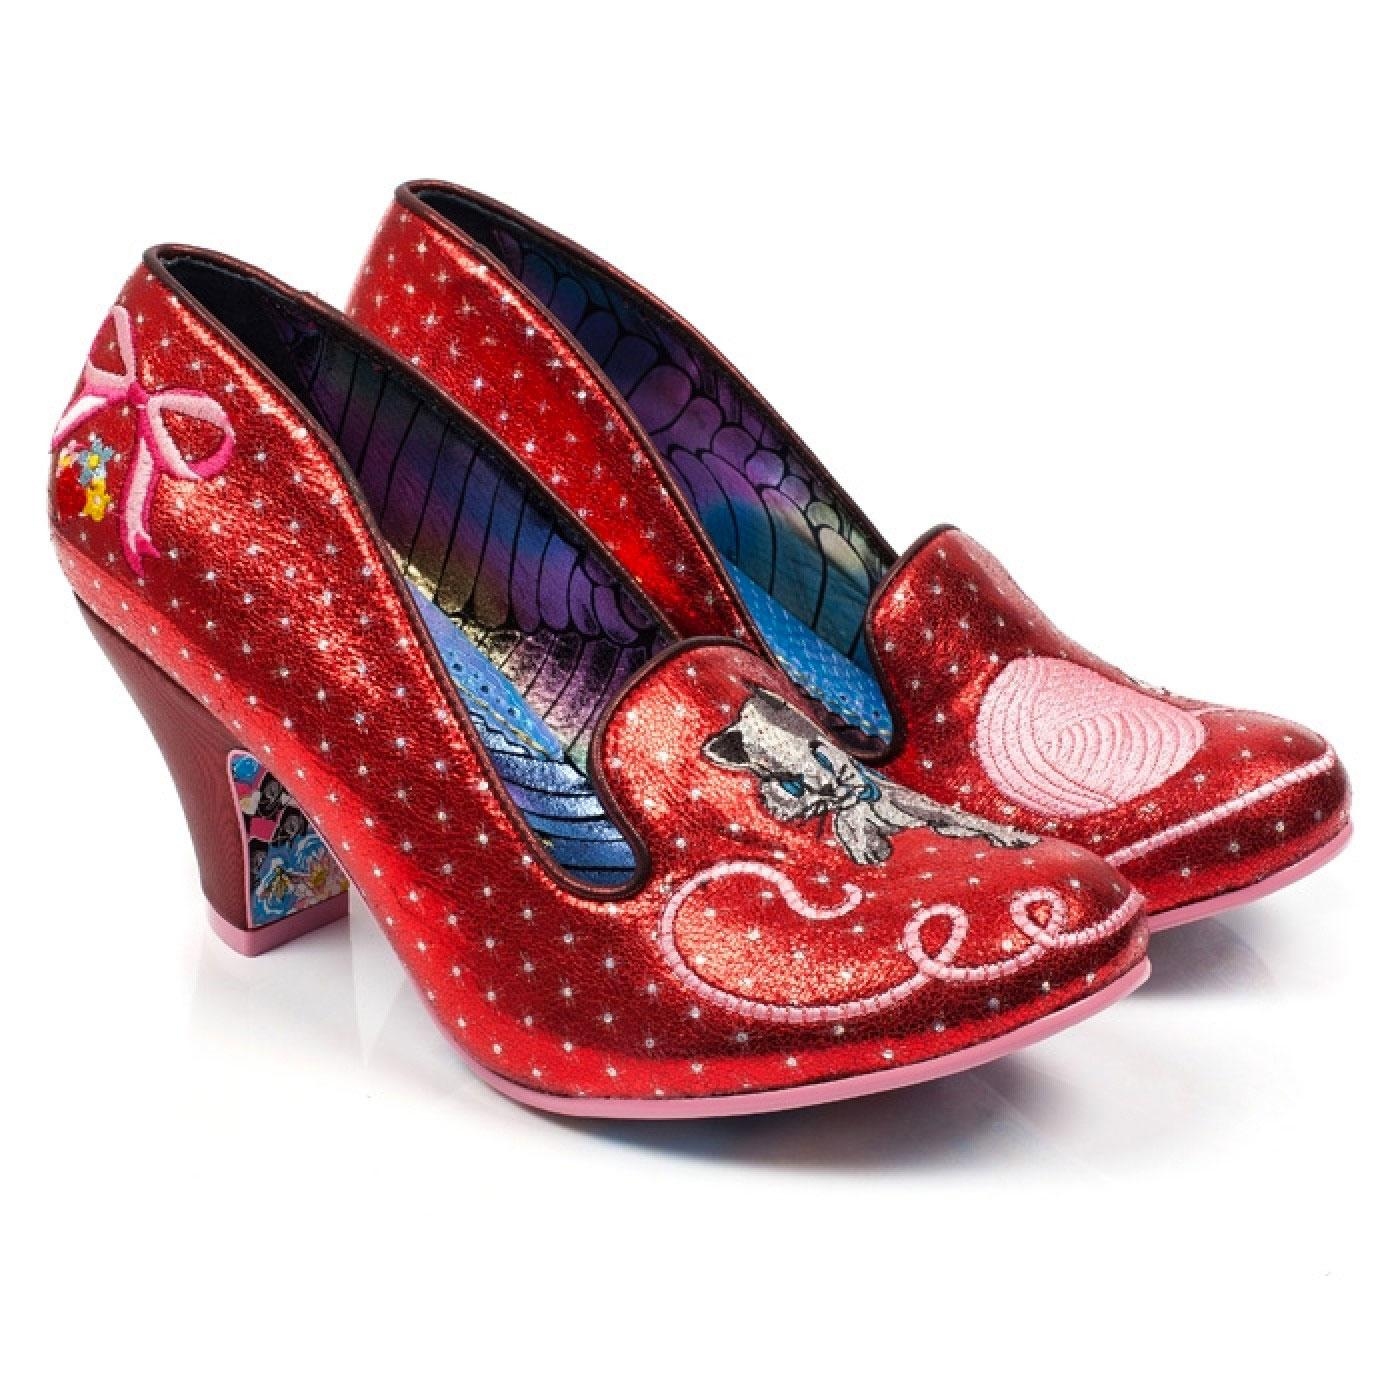 Fuzzy Peg IRREGULAR CHOICE Kitty Shoes in Red